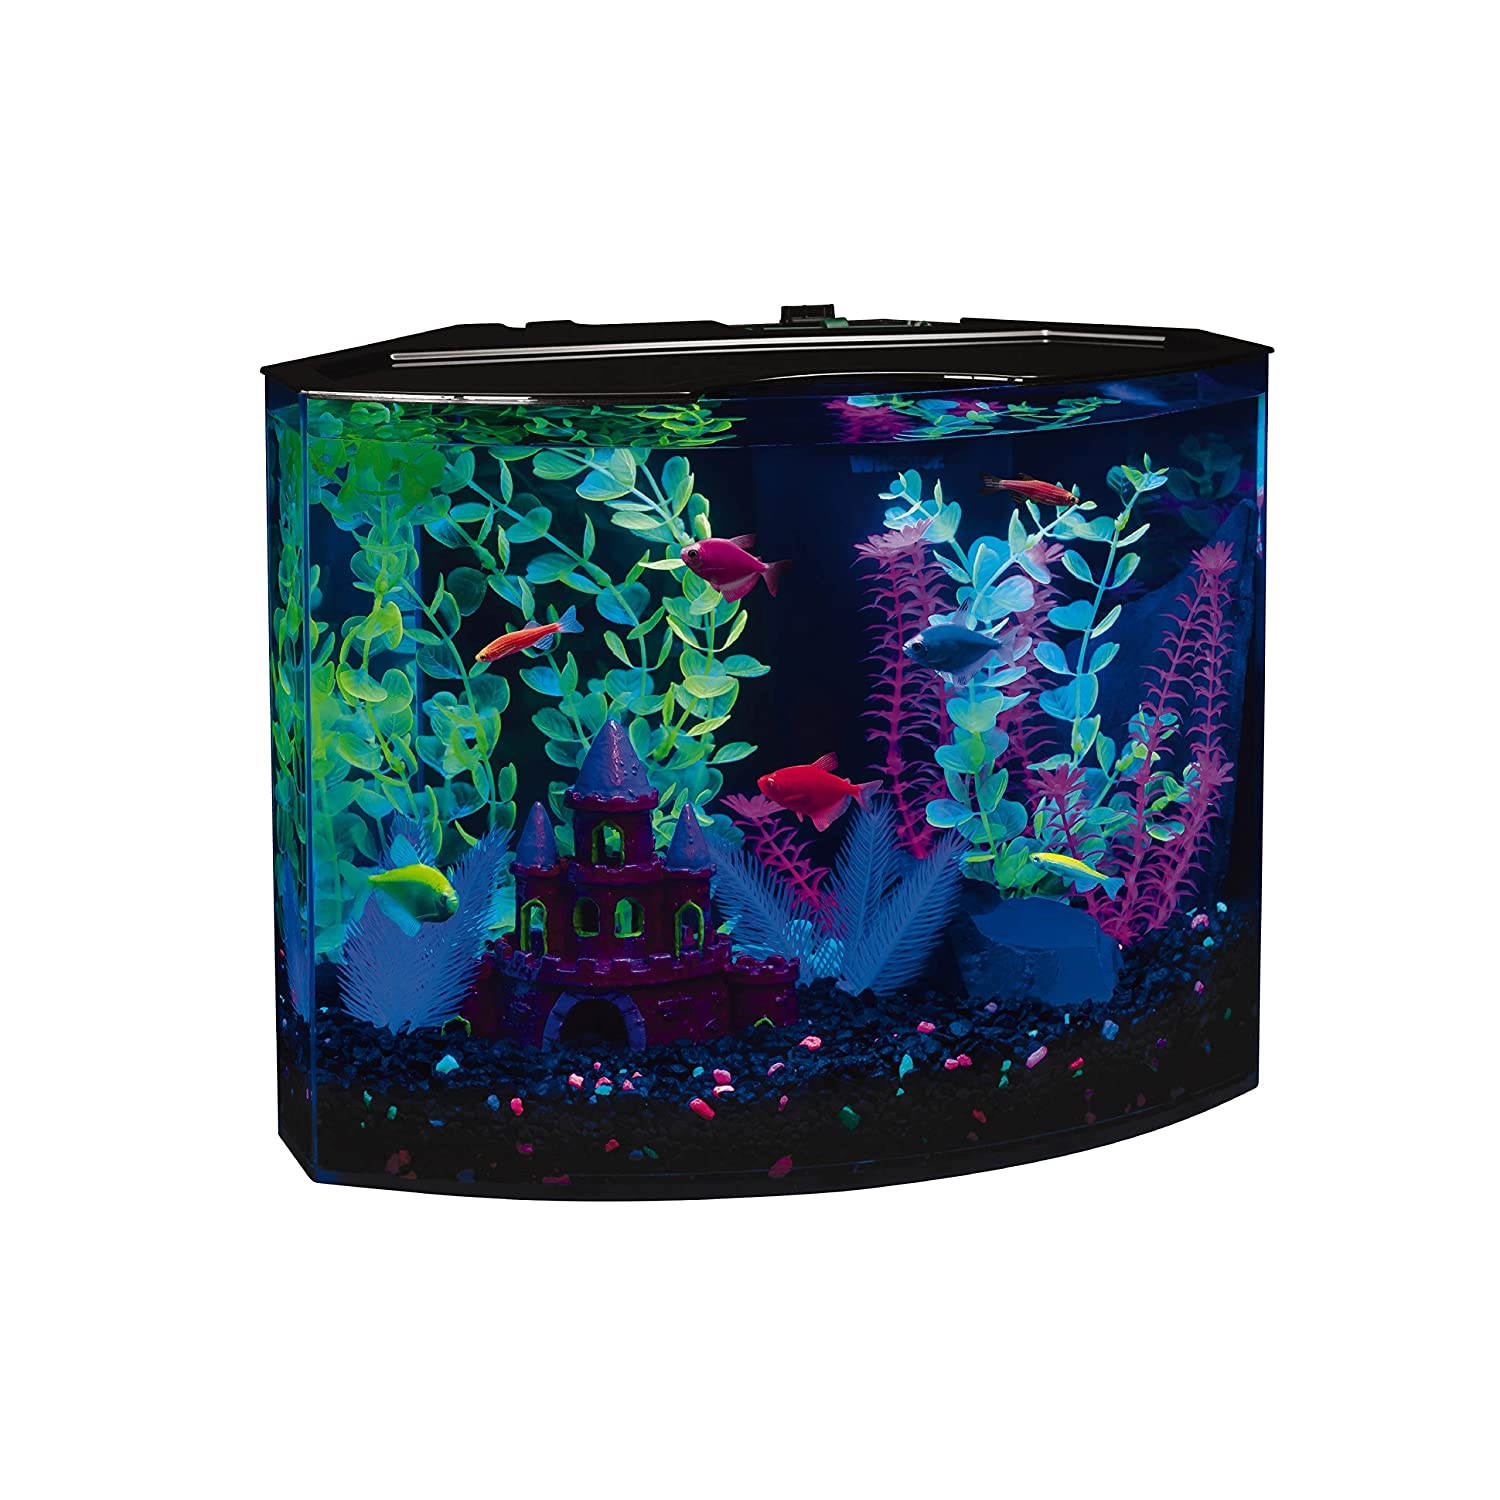 GloFish 29045 Kit Acuario con luz LED Azul, 5-Gallon: Amazon.es: Productos para mascotas